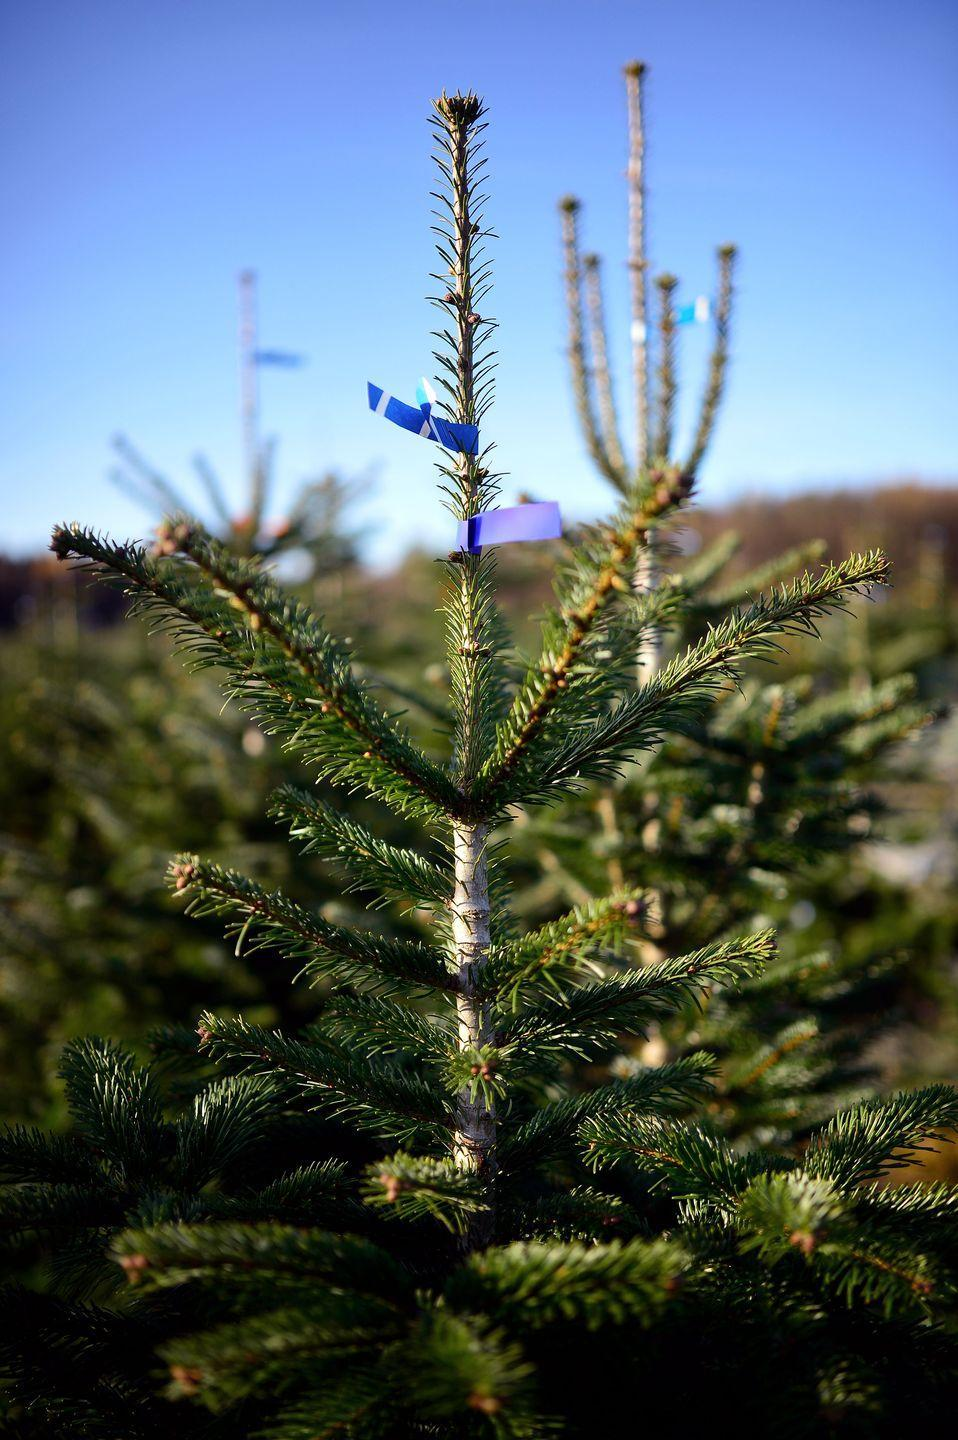 """<p>Instead of hitting the corner stand or the local nursery, consider a day trip to a tree farm, where you can cut down your own tree. Of course, you could put an entirely different spin on the Christmas activity, too: If you don't want a live tree, craft a pegboard or washi tape tree on an empty wall. </p><p><em>Learn how to make a pegboard Christmas tree at <a href=""""https://sugarandcloth.com/diy-pegboard-christmas-tree/"""" rel=""""nofollow noopener"""" target=""""_blank"""" data-ylk=""""slk:Sugar & Cloth"""" class=""""link rapid-noclick-resp"""">Sugar & Cloth</a>.</em><br></p>"""